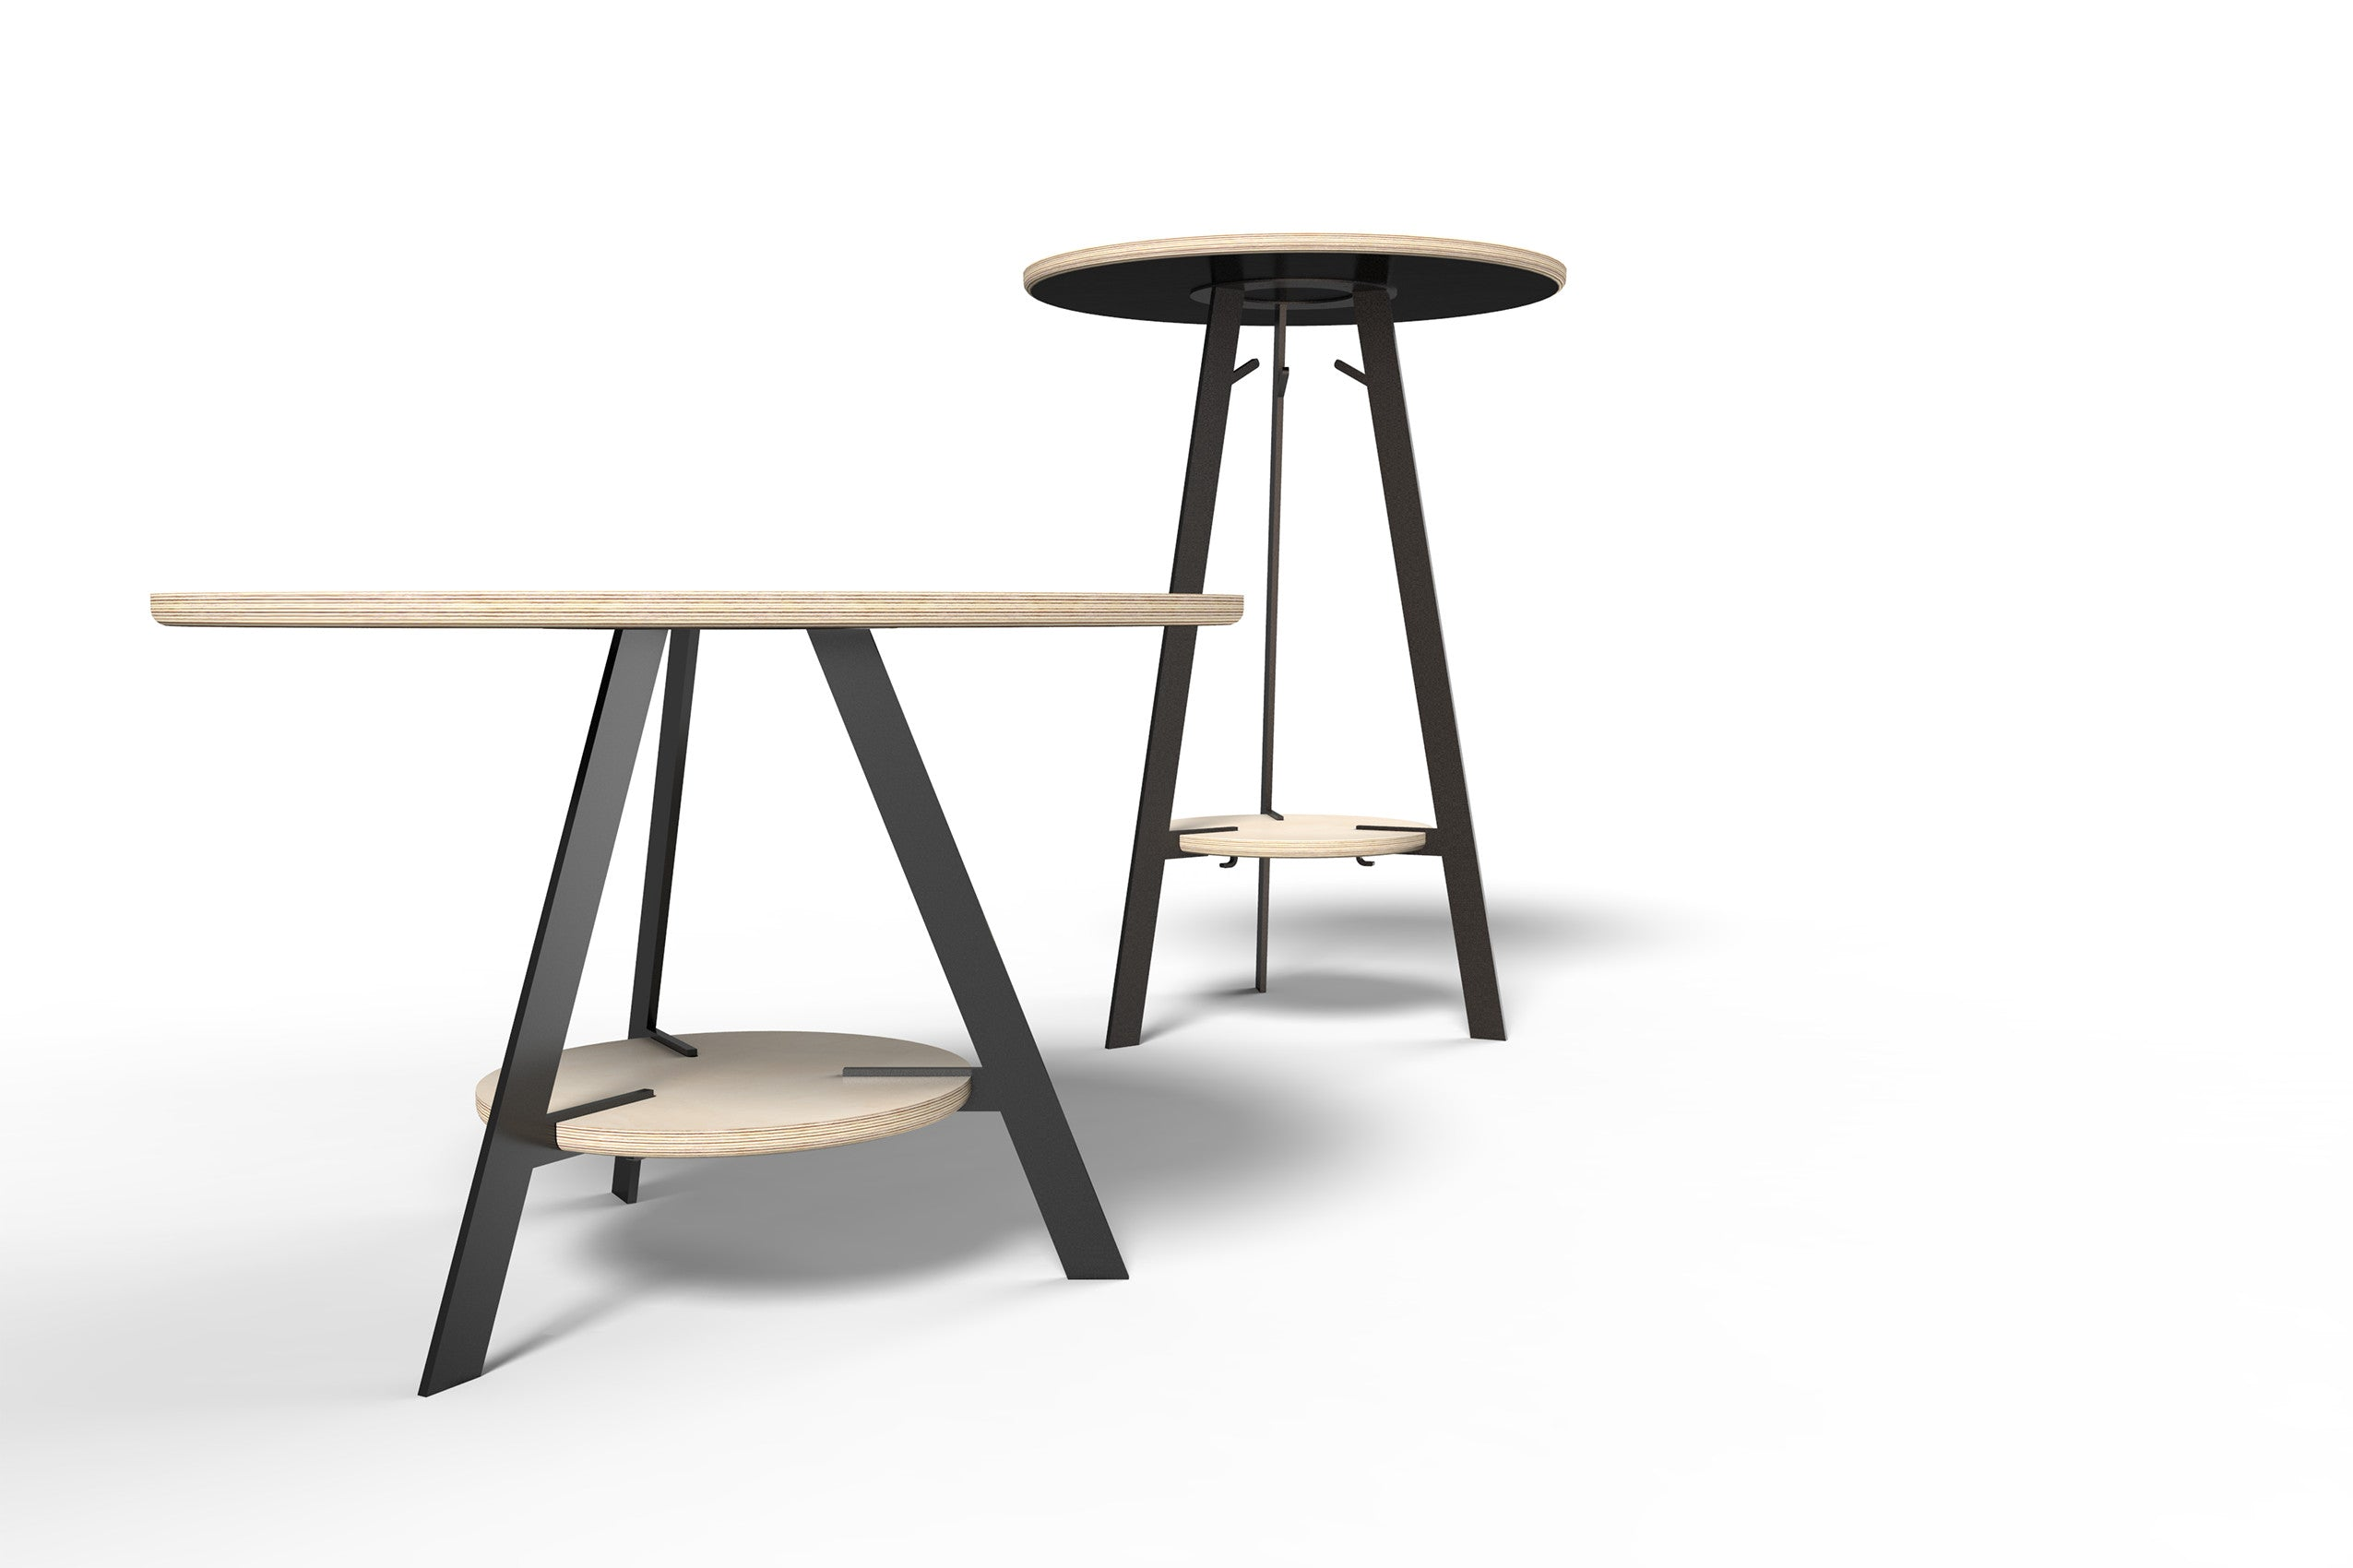 Wood and metal tables with technology